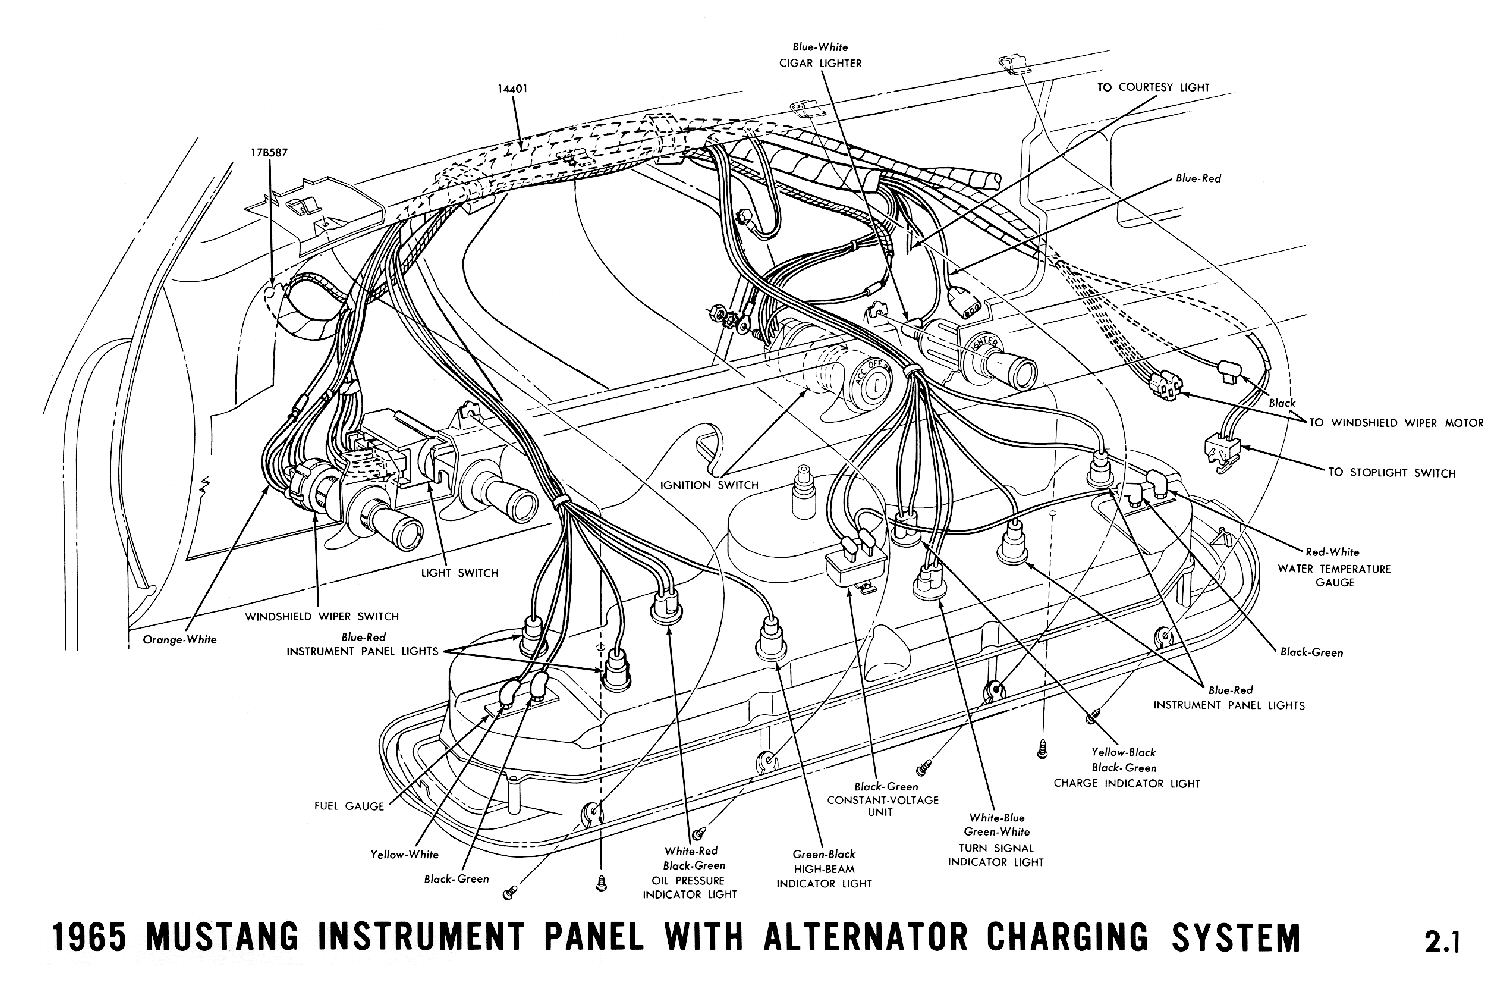 88 Mustang Light Wiring Diagram on additionally 1968 mustang wiring diagram on 1965 dodge